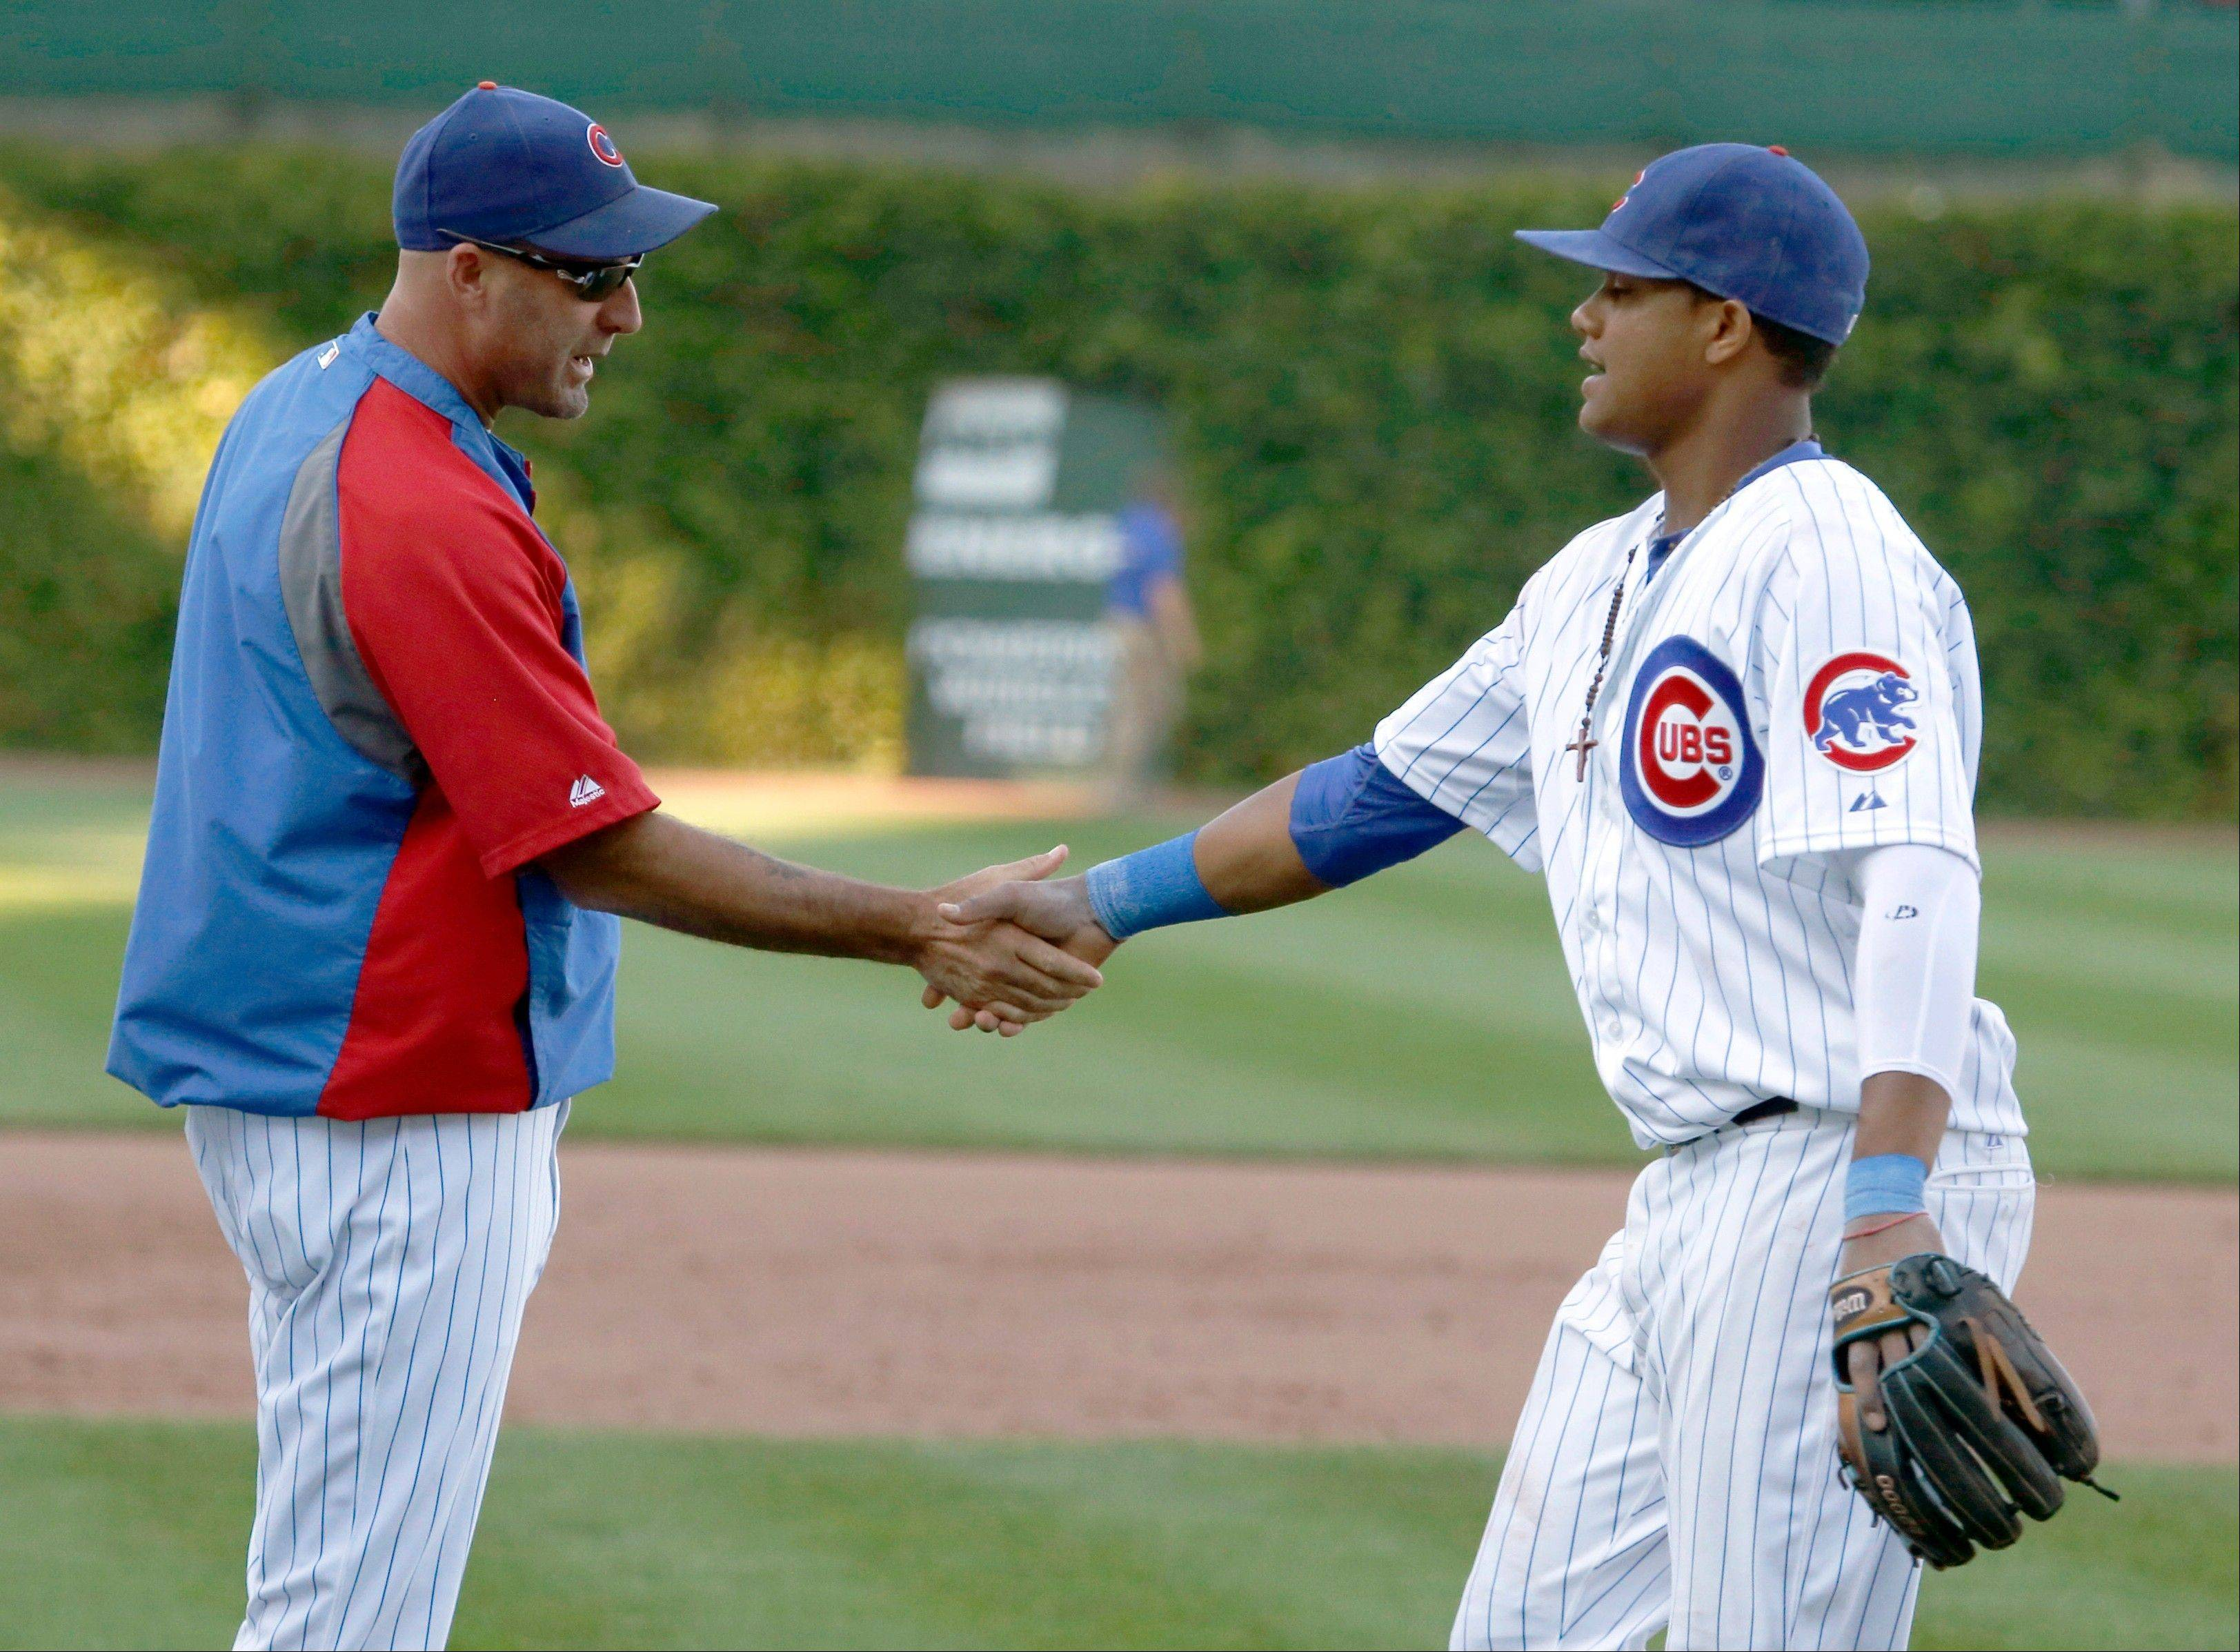 The Cubs' manager Dale Sveum greets shortstop Starlin Castro after the Cubs' 4-2 win over the Pittsburgh Pirates Wednesday in their last home baseball game of the season.